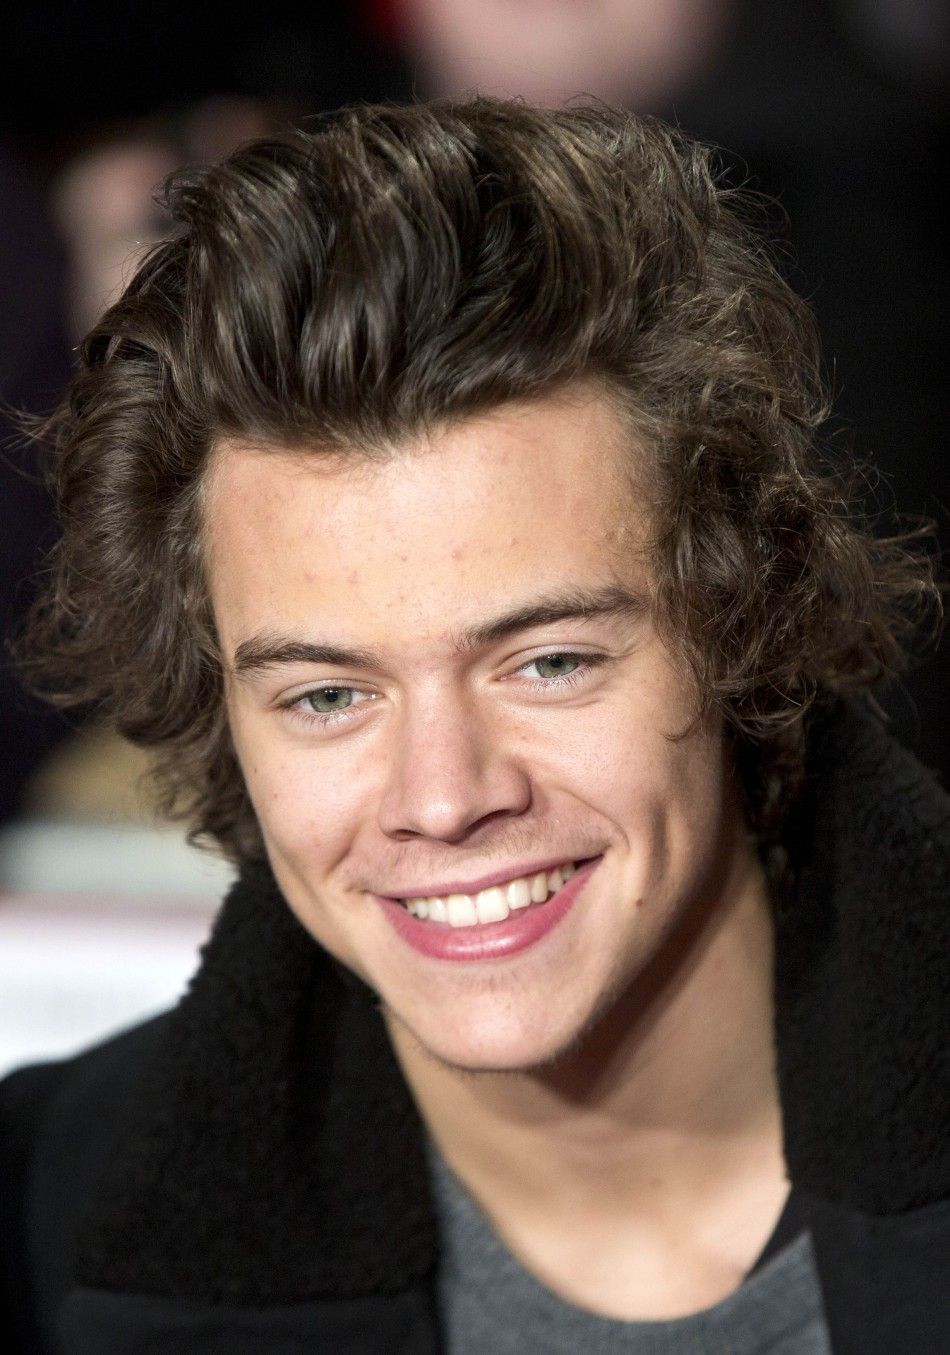 Singer Harry Styles from the band One Direction attends the world premiere of the film